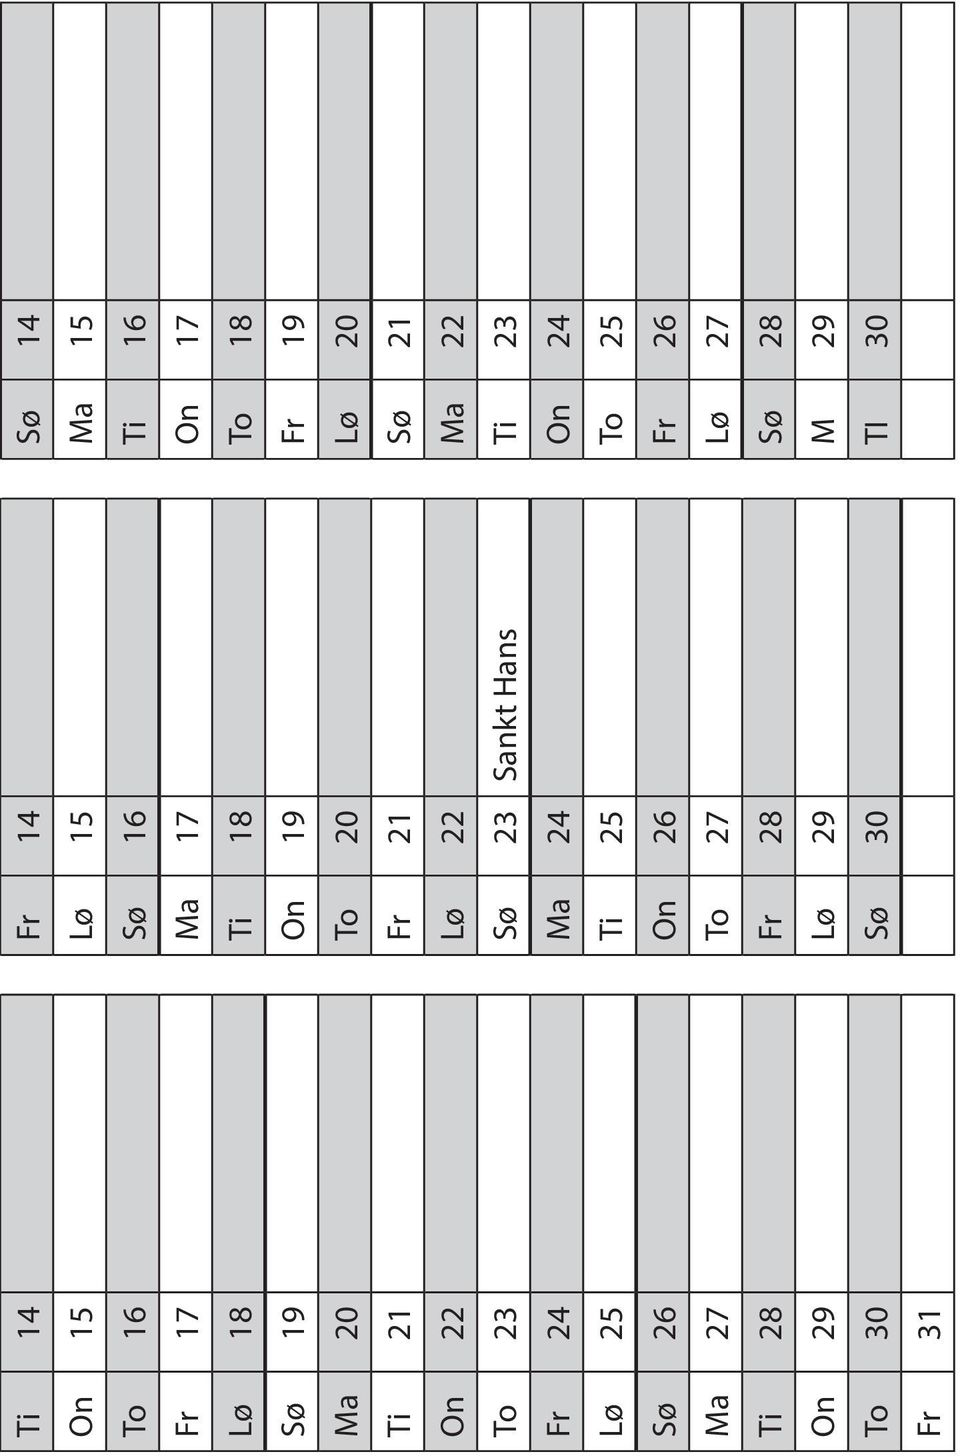 To 23 Sø 23 Sankt Hans Ti 23 Fr 24 Ma 24 On 24 Lø 25 Ti 25 To 25 Sø 26 On 26 Fr